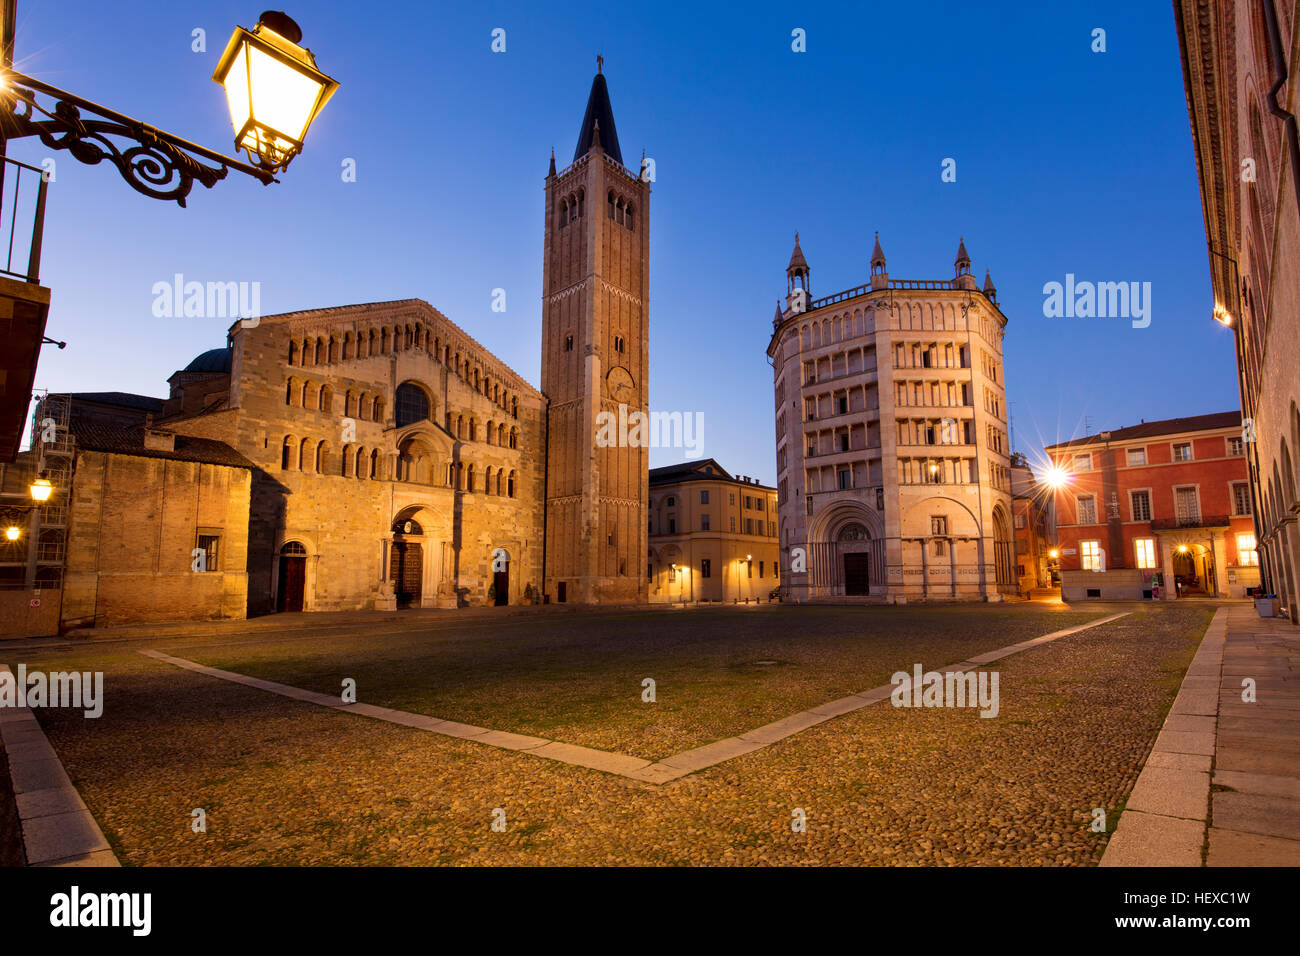 Early morning twilight over the Duomo and Baptistery in Piazza del Duomo, Parma, Emilia-Romagna, Italy - Stock Image